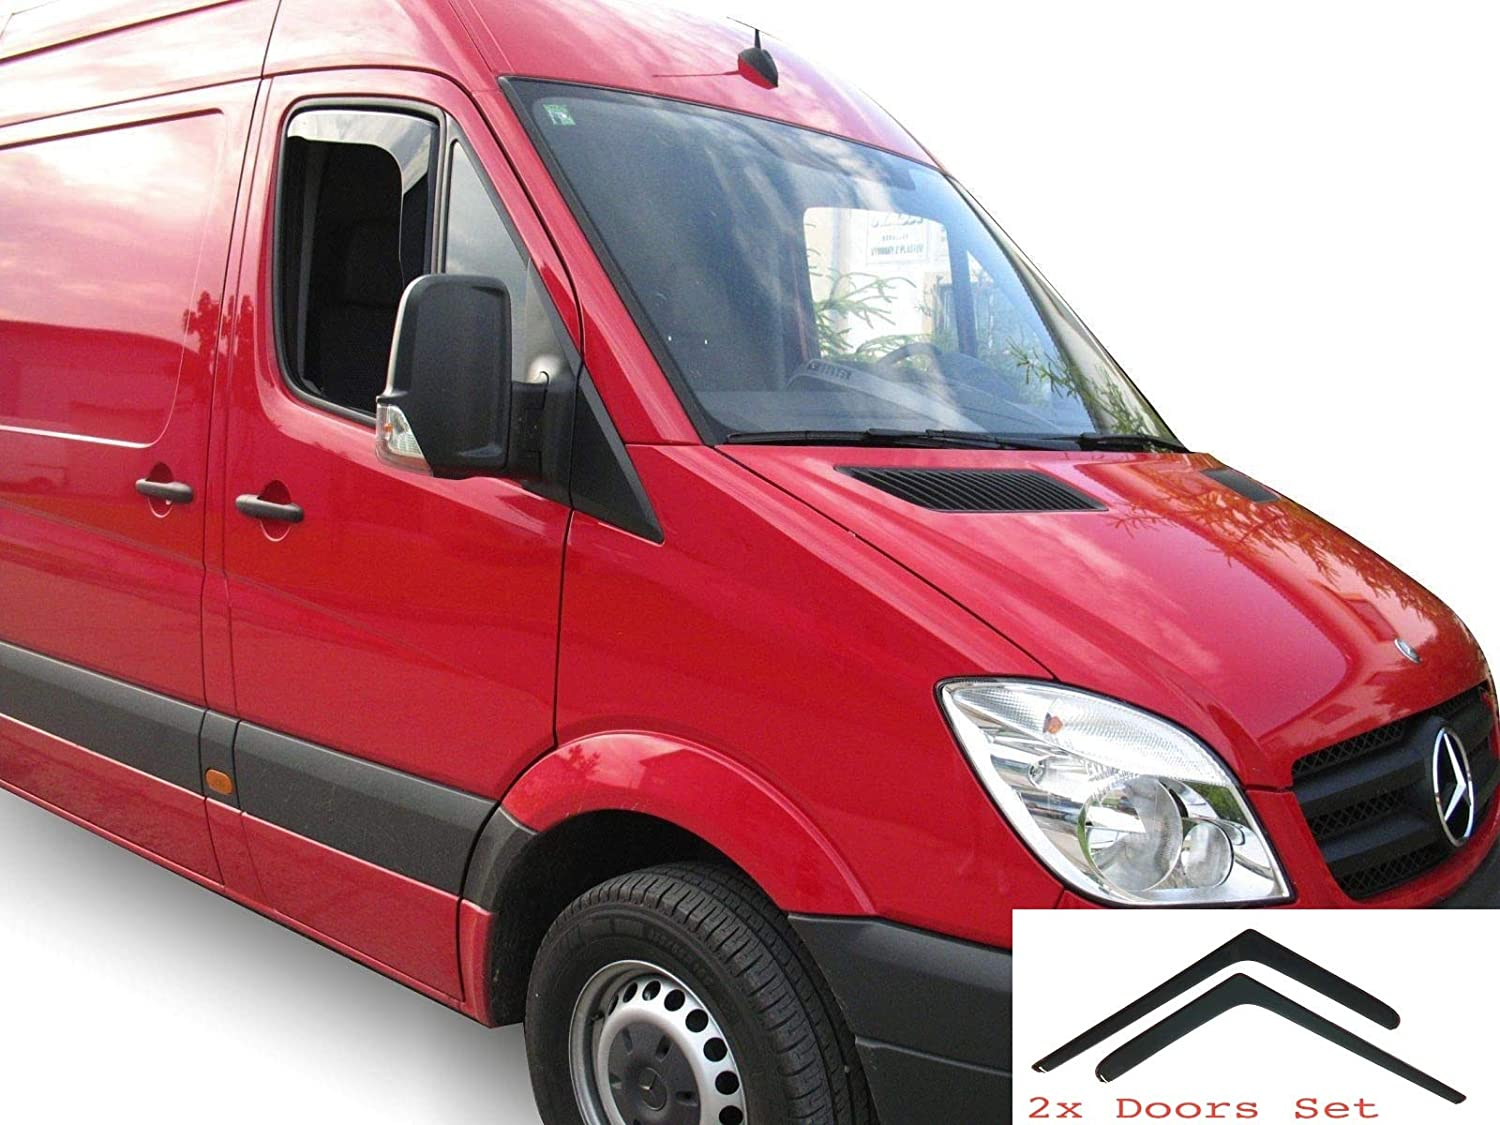 OEMM Set of 2 Wind Deflectors IN-CHANNEL Type Compatible with MERCEDES BENZ SPRINTER W906 /& VOLKSWAGEN CRAFTER VW 2006 to 2018 Acrylic Glass Side Visors Window Deflectors